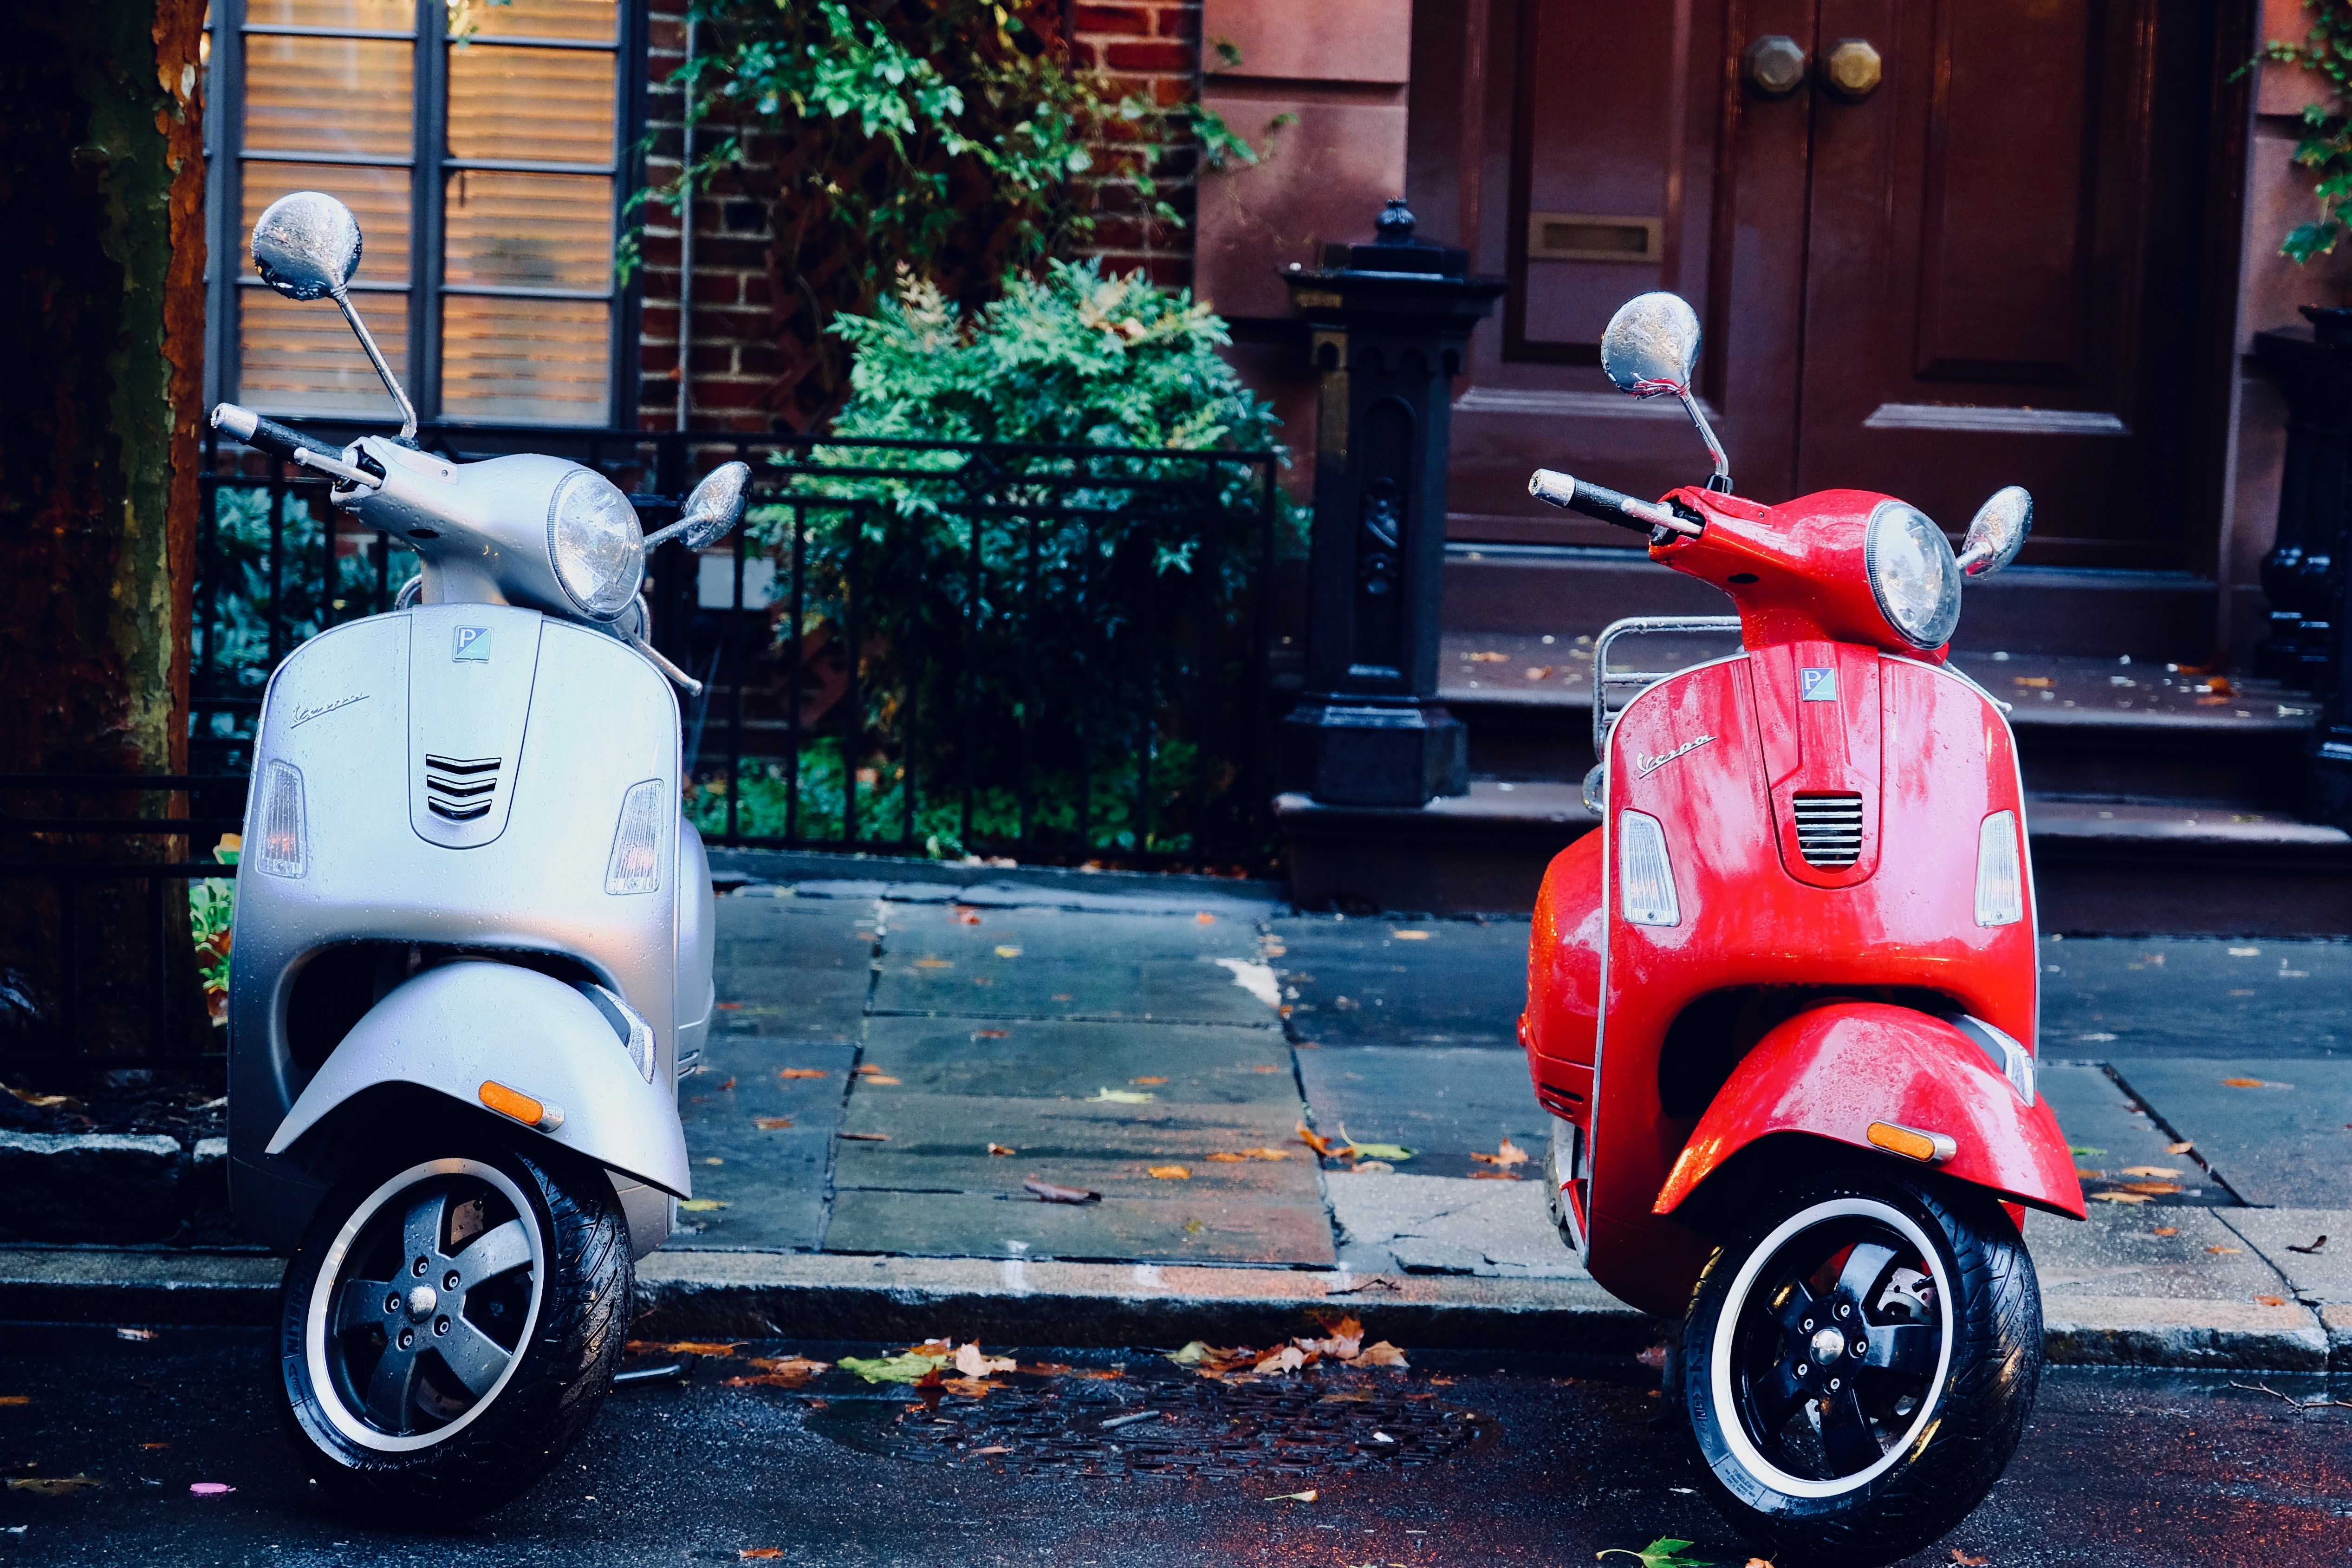 white and red motor scooters parked side-by-side